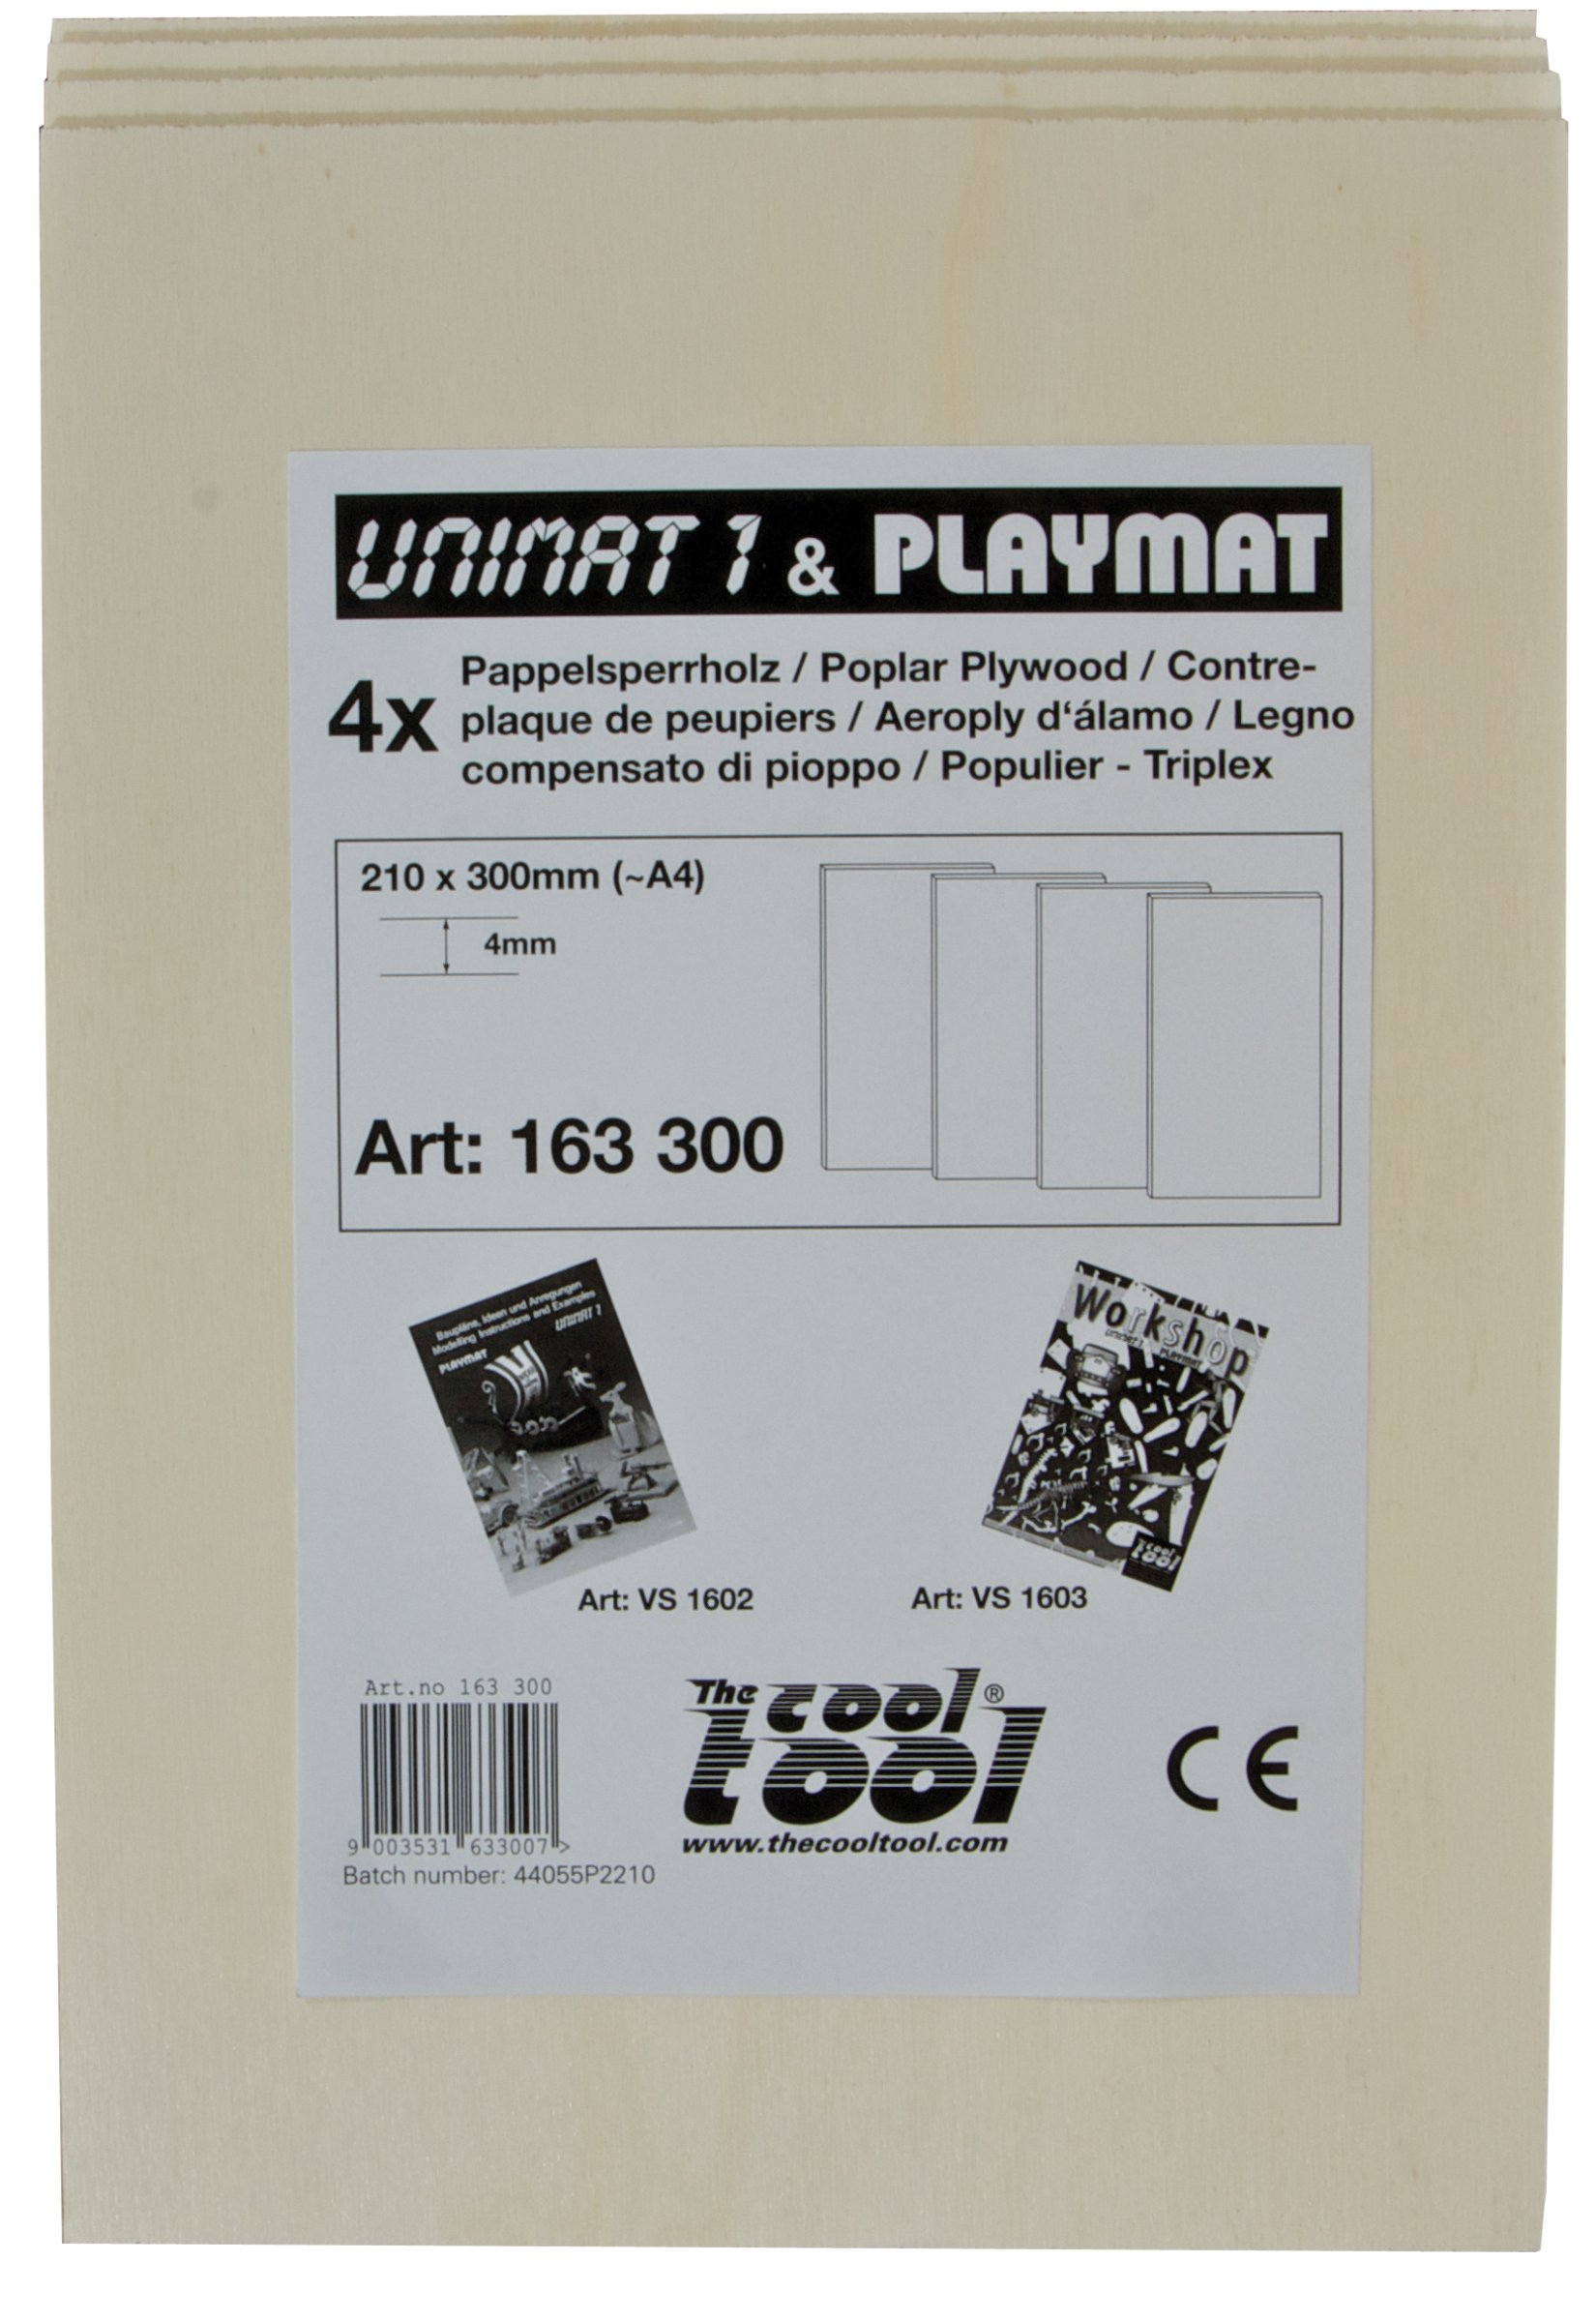 PLAYMAT Contreplaqué de peuplier 4mm, 4 pcs.